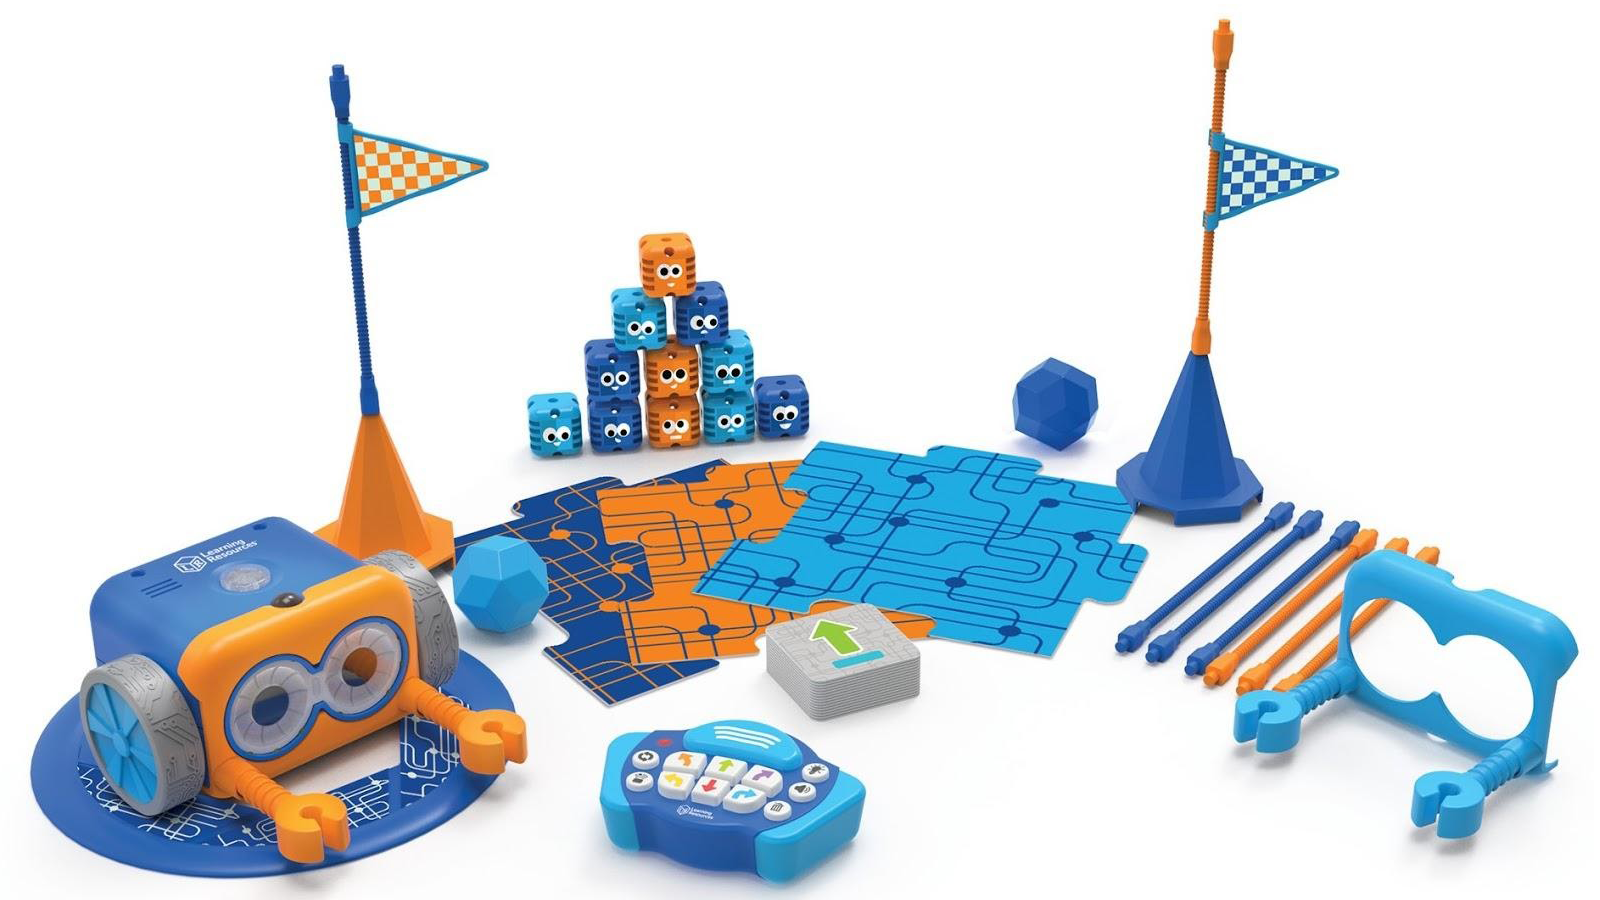 Botley 2.0 with obstacle course and other set accessories